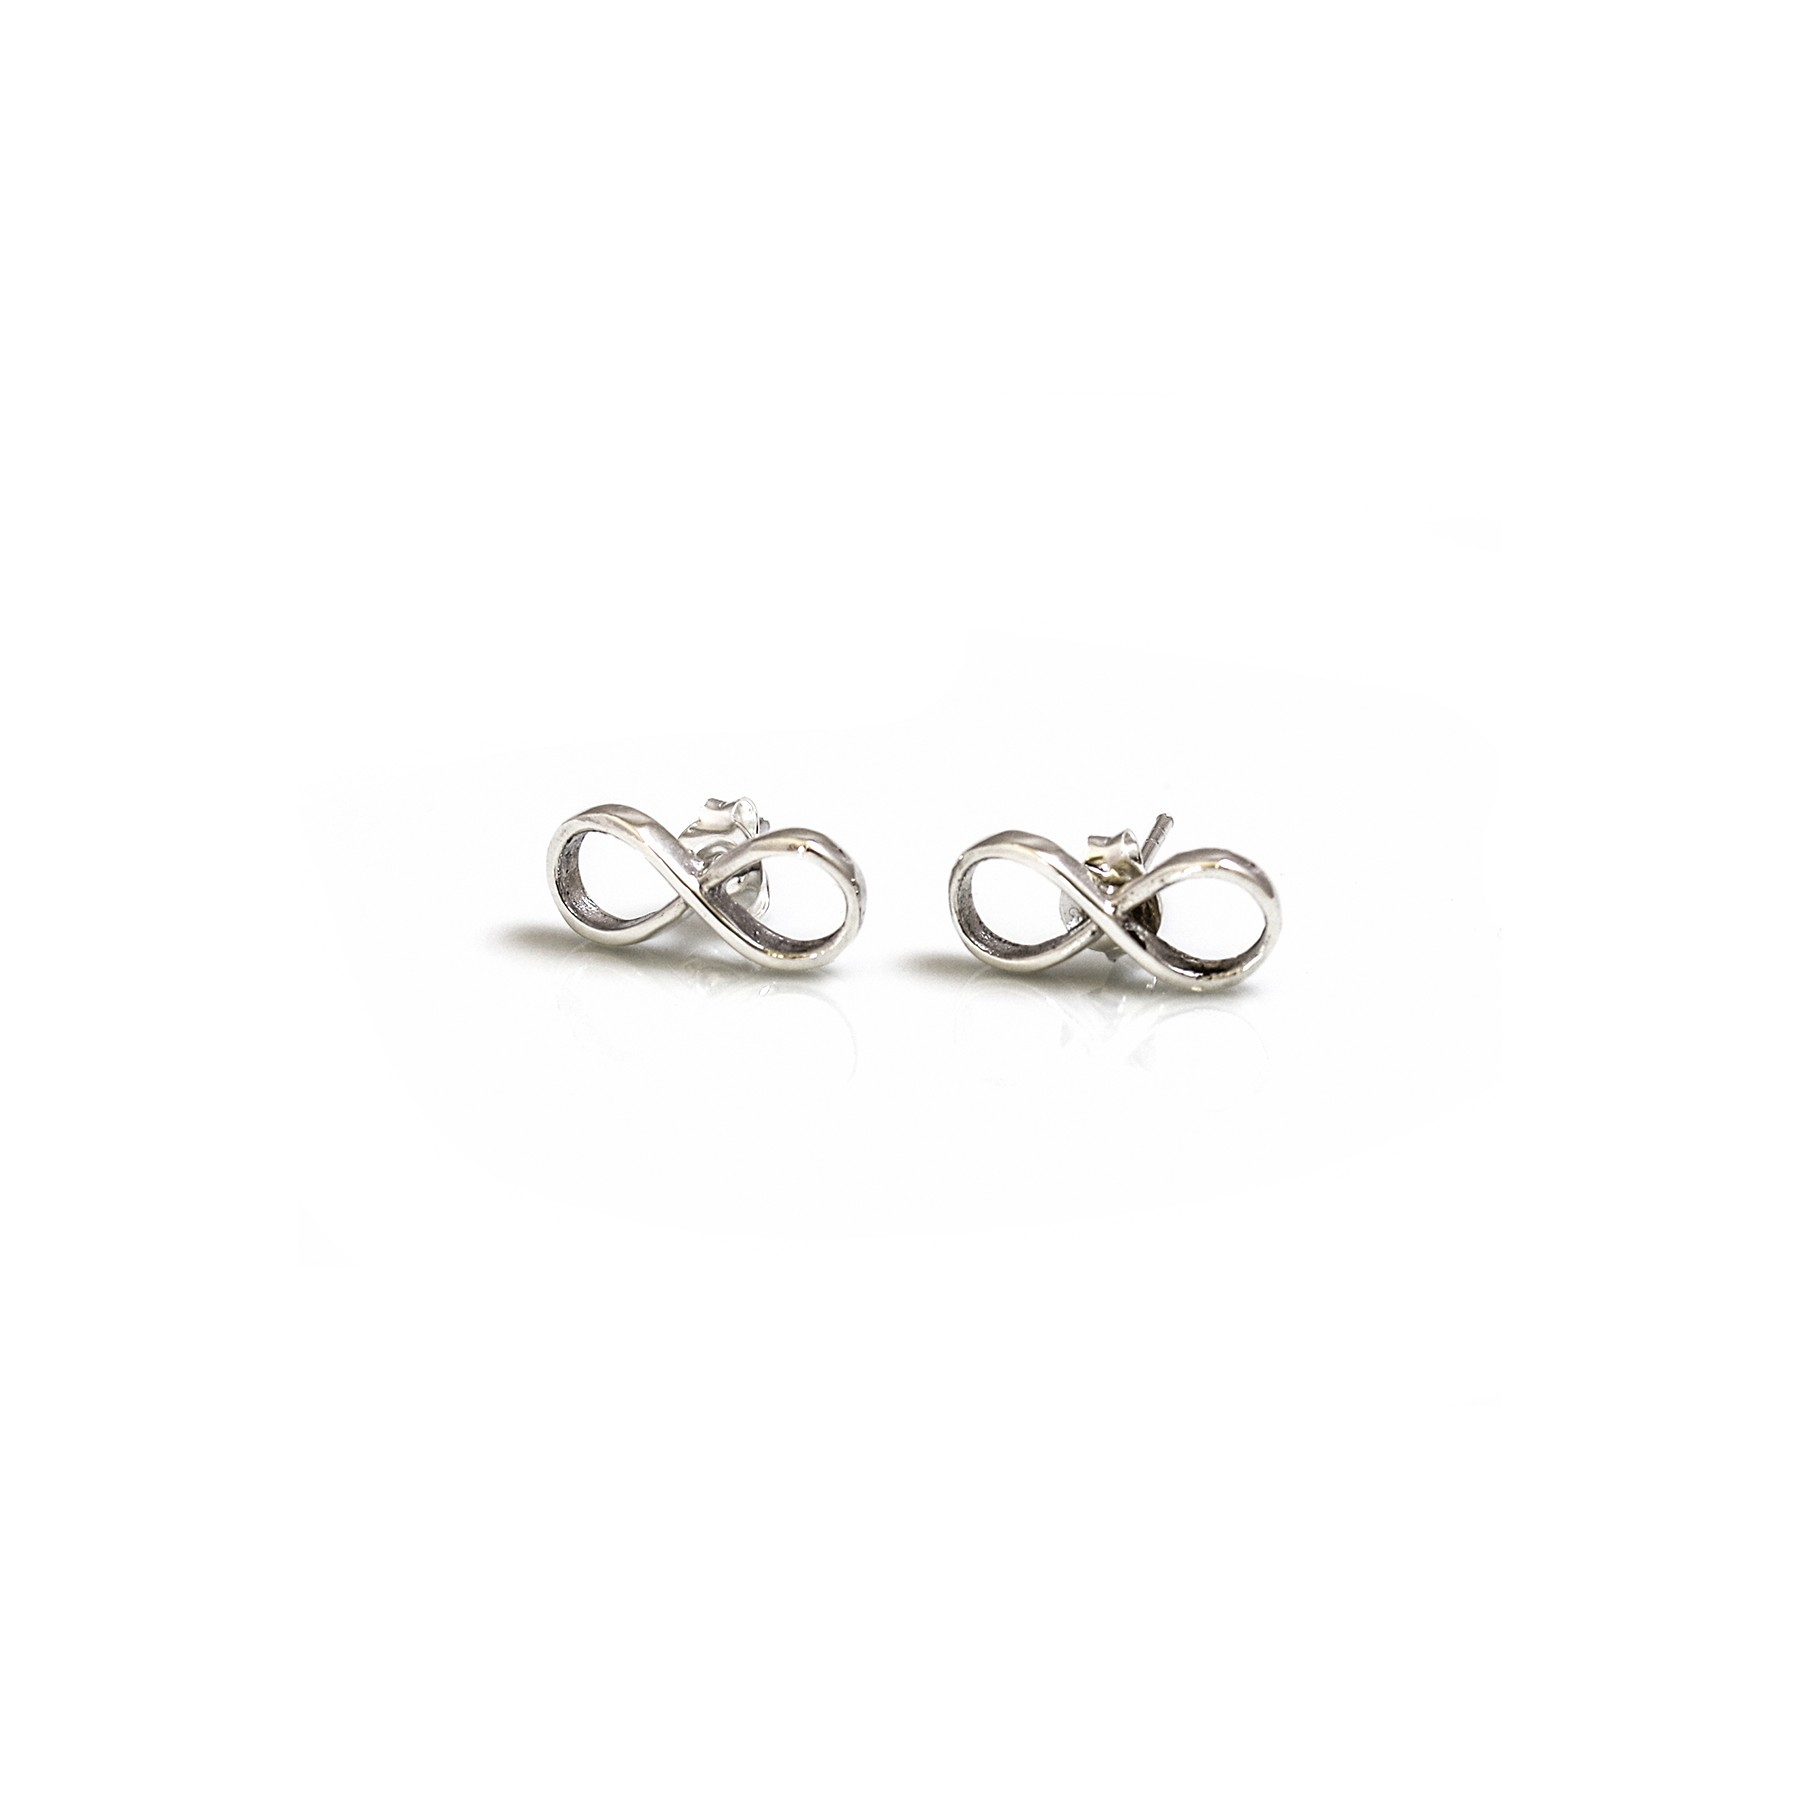 p zirconia earrings infinity gold stud cubic asp